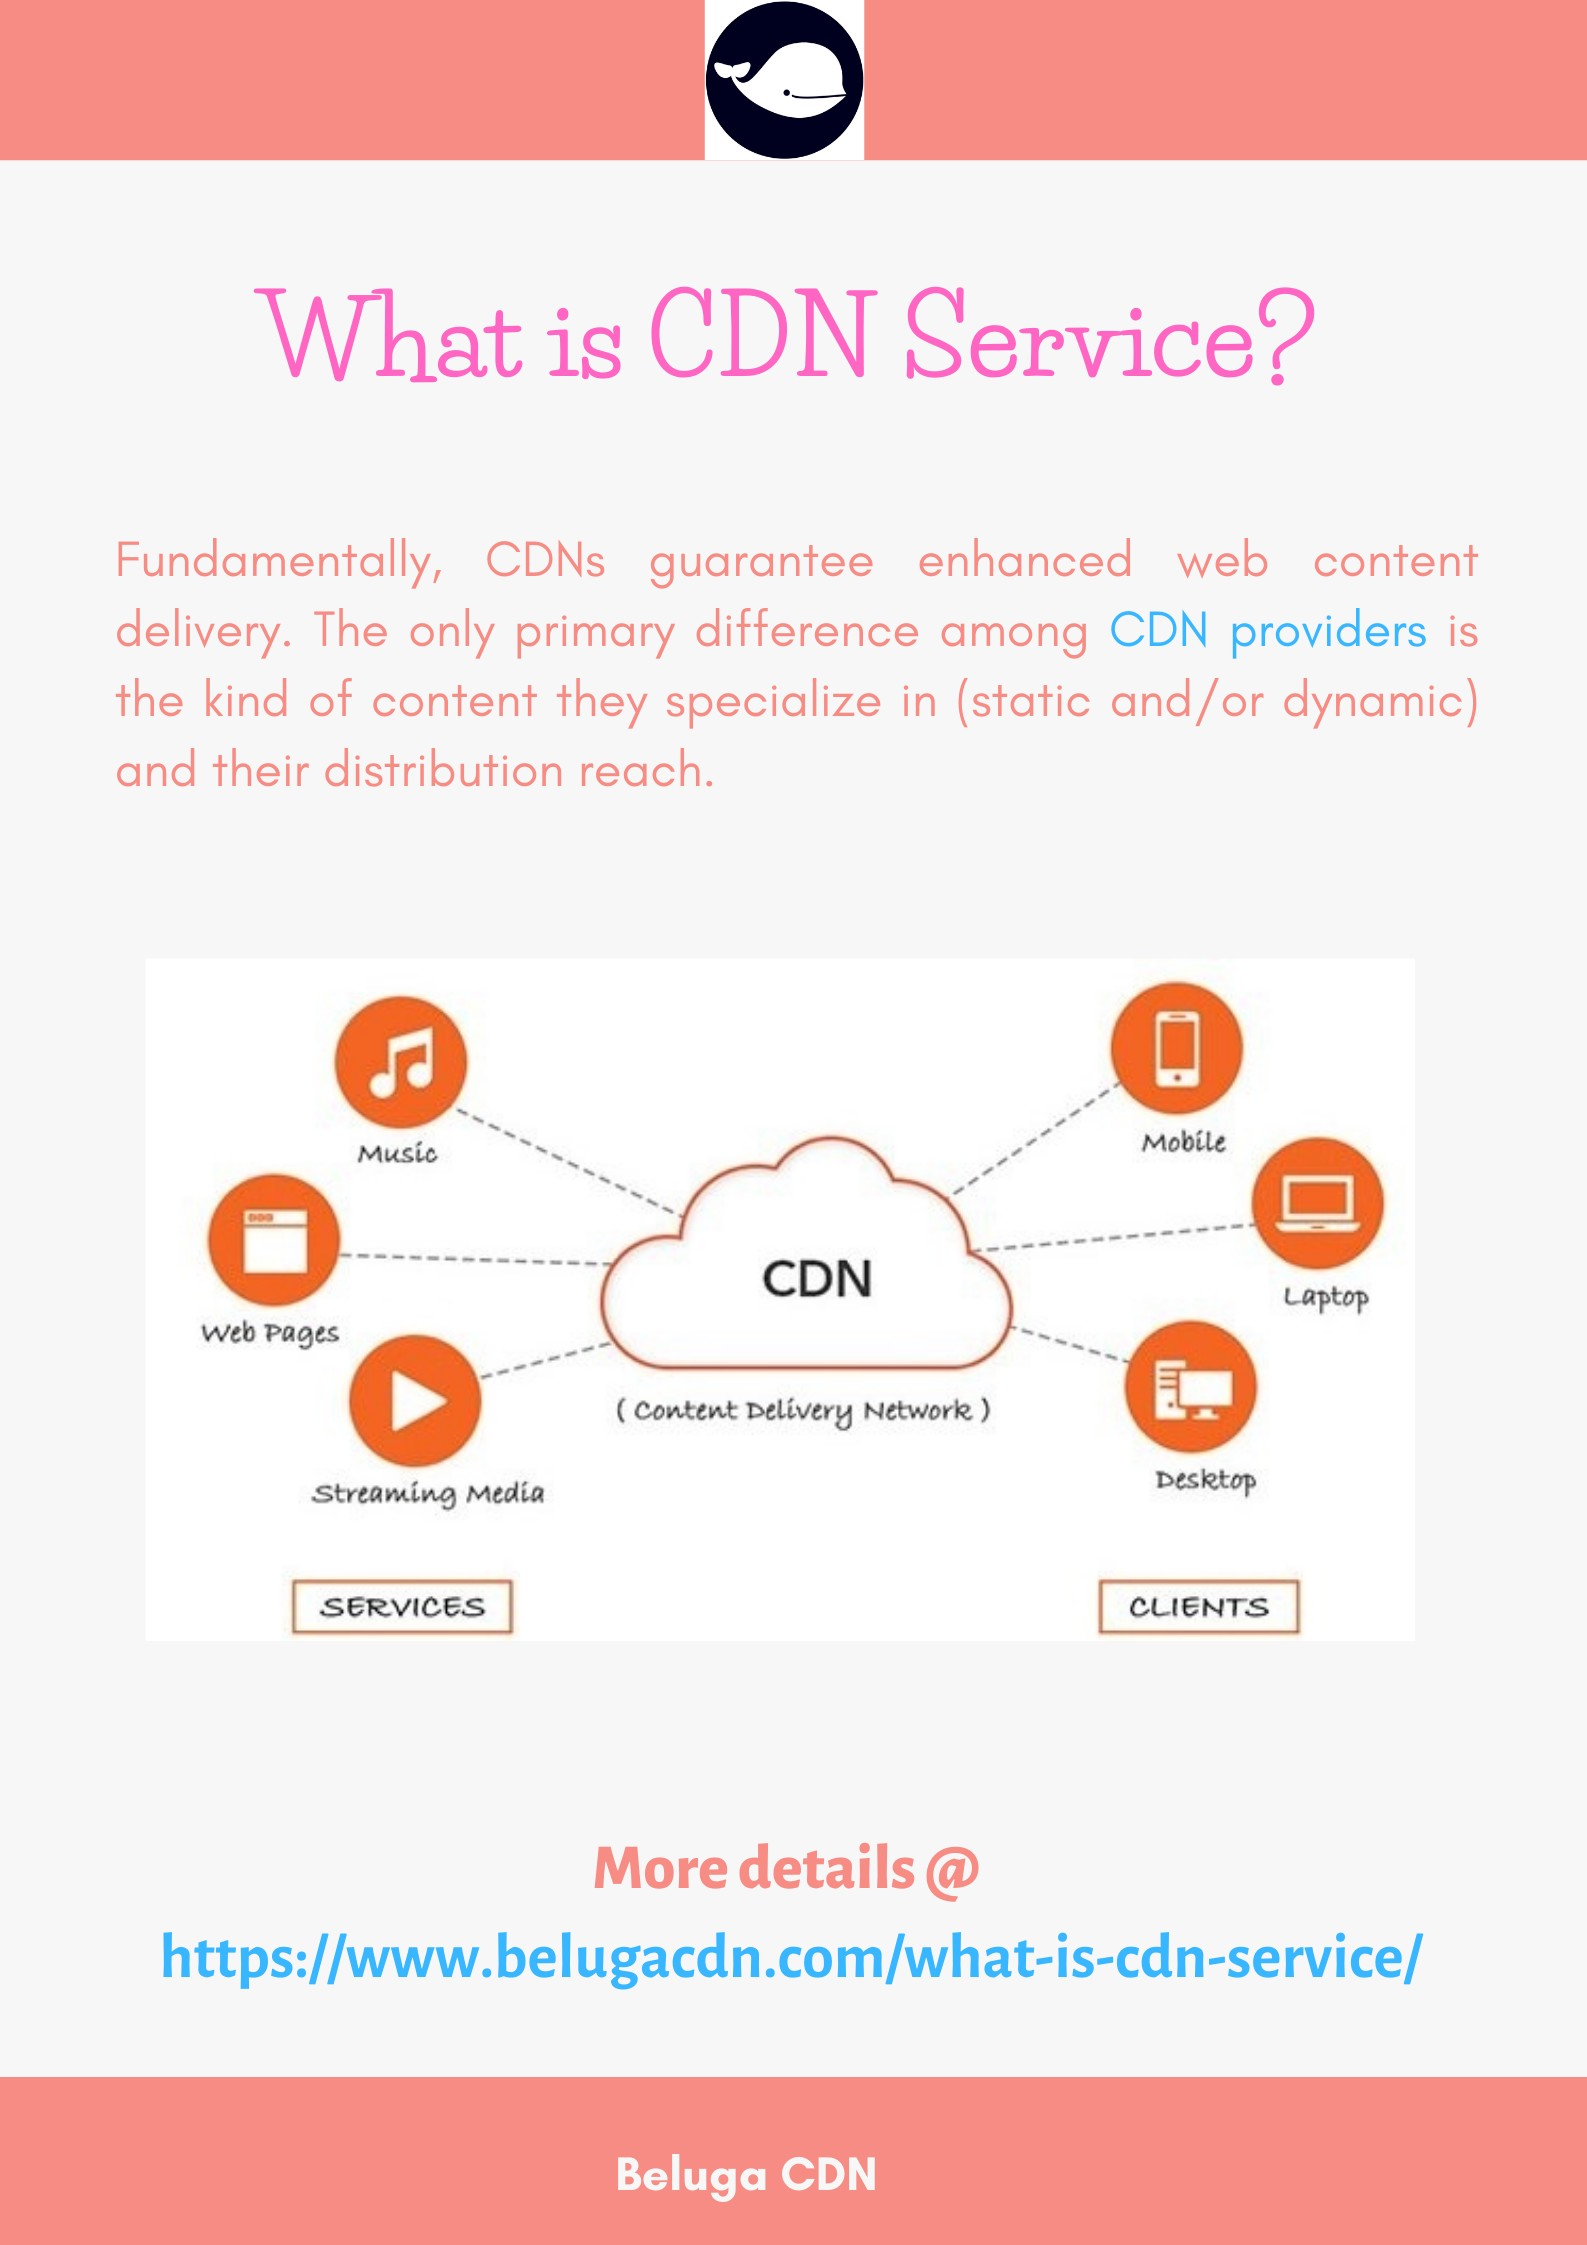 What is CDN Service?